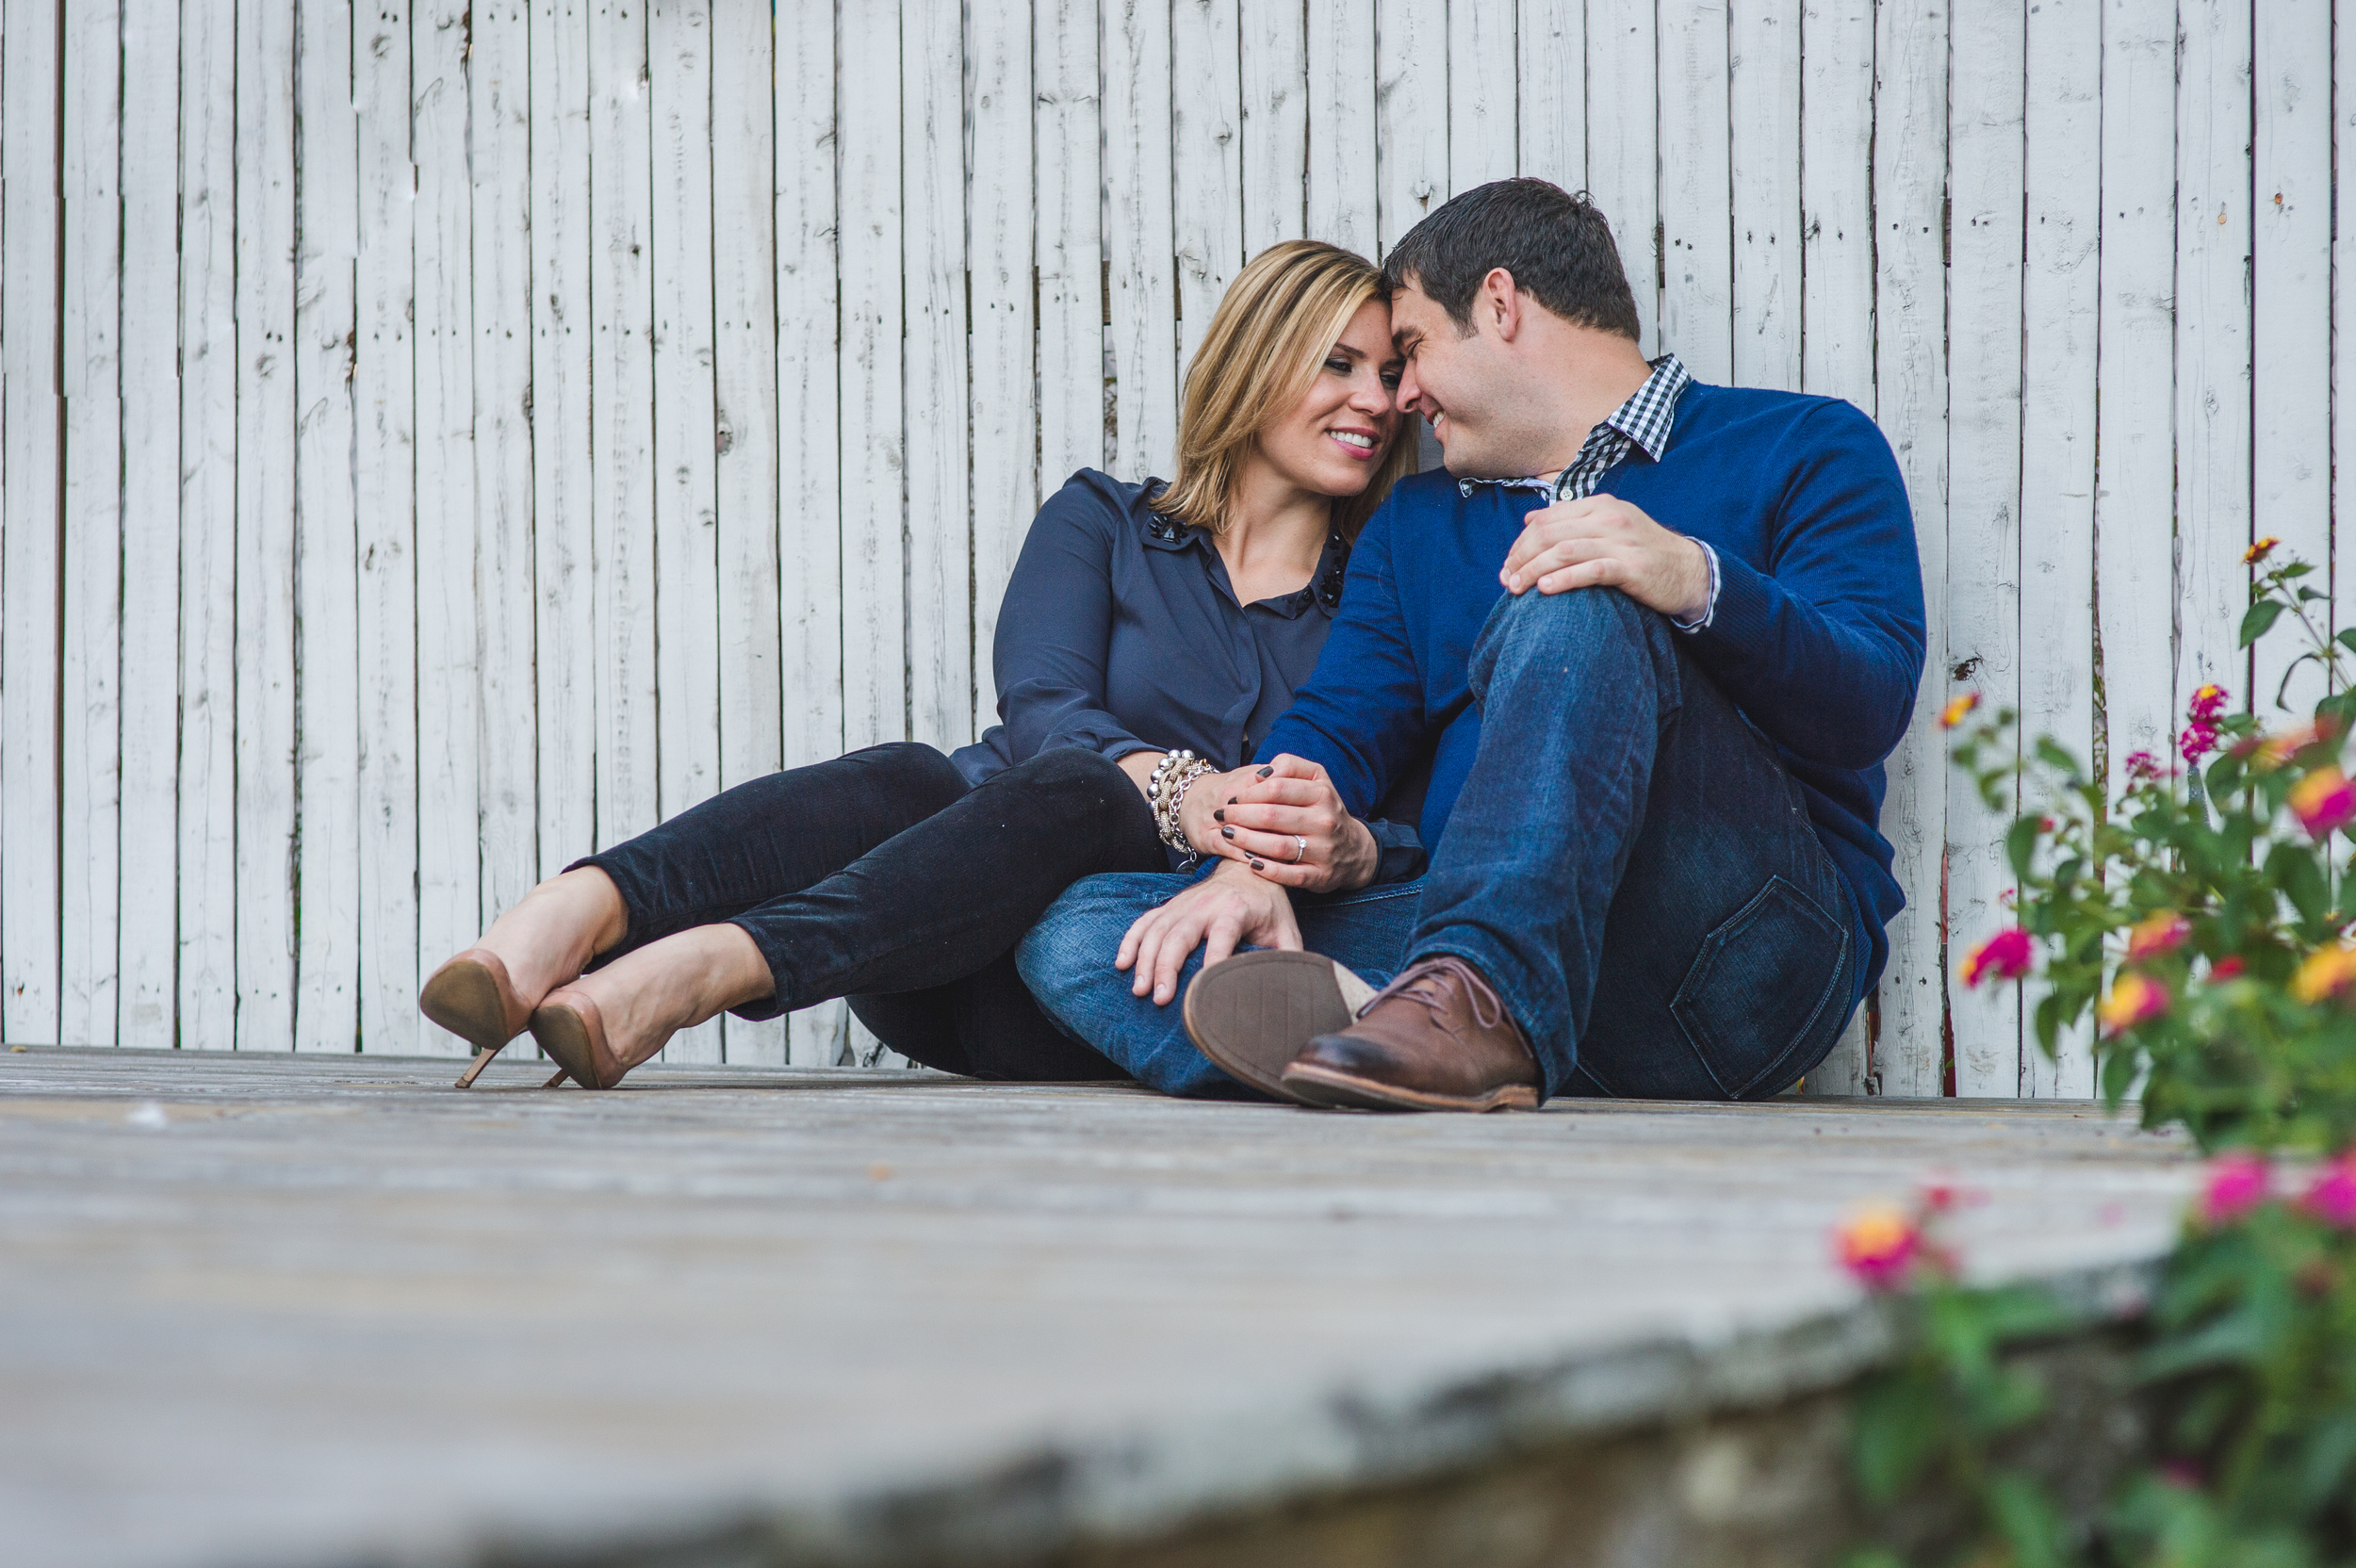 Engagement session Freedom Park Arlington VA by Mantas Kubilinskas-5.jpg